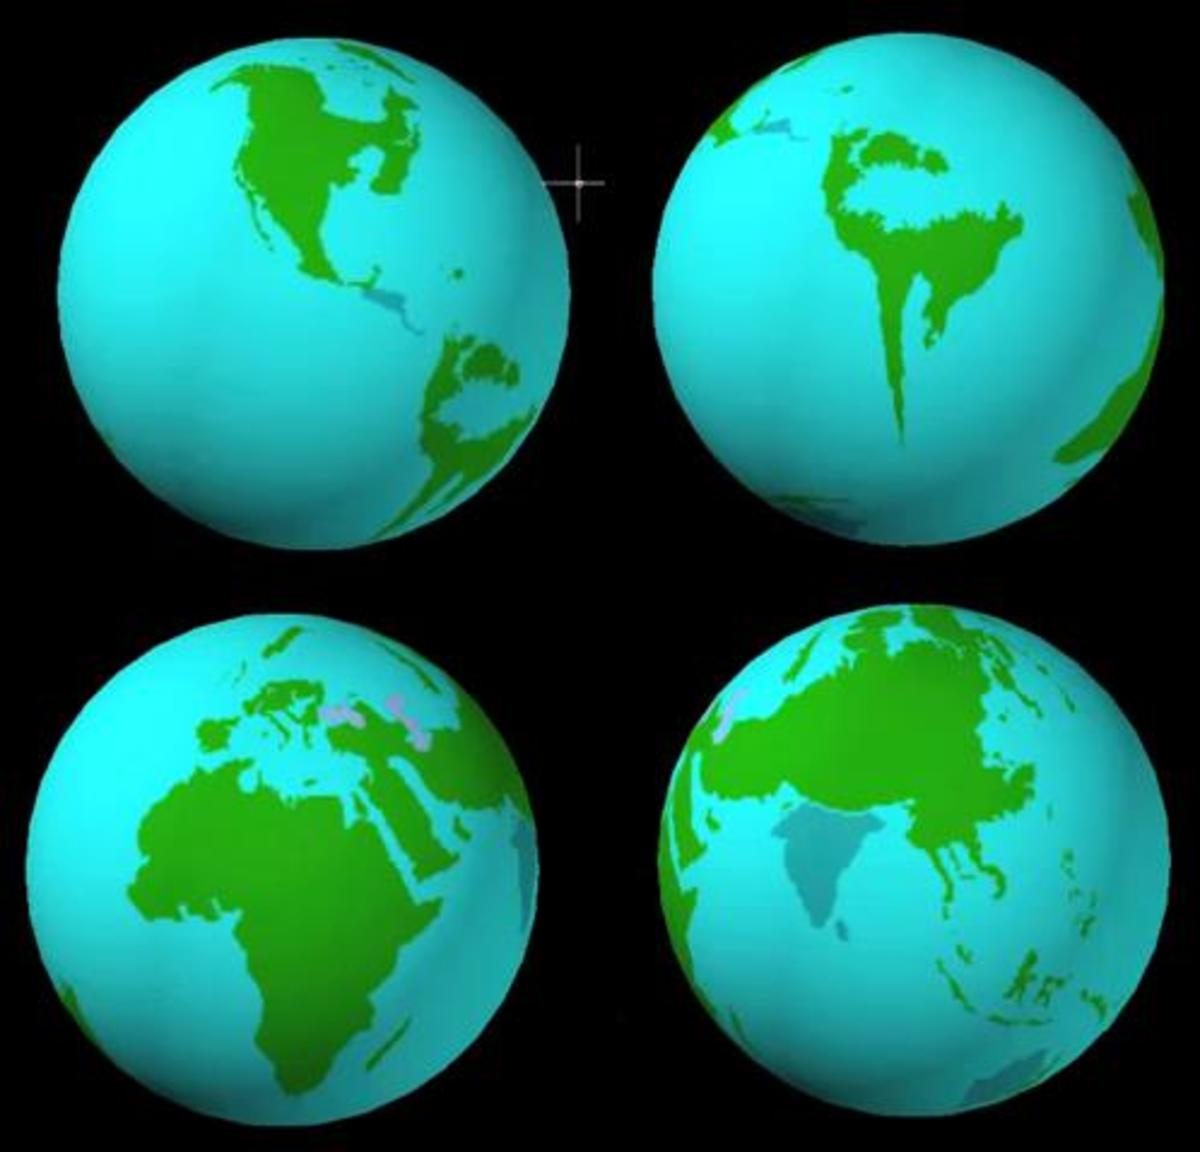 A possible look at the Earth's continents after the Polar Shift.